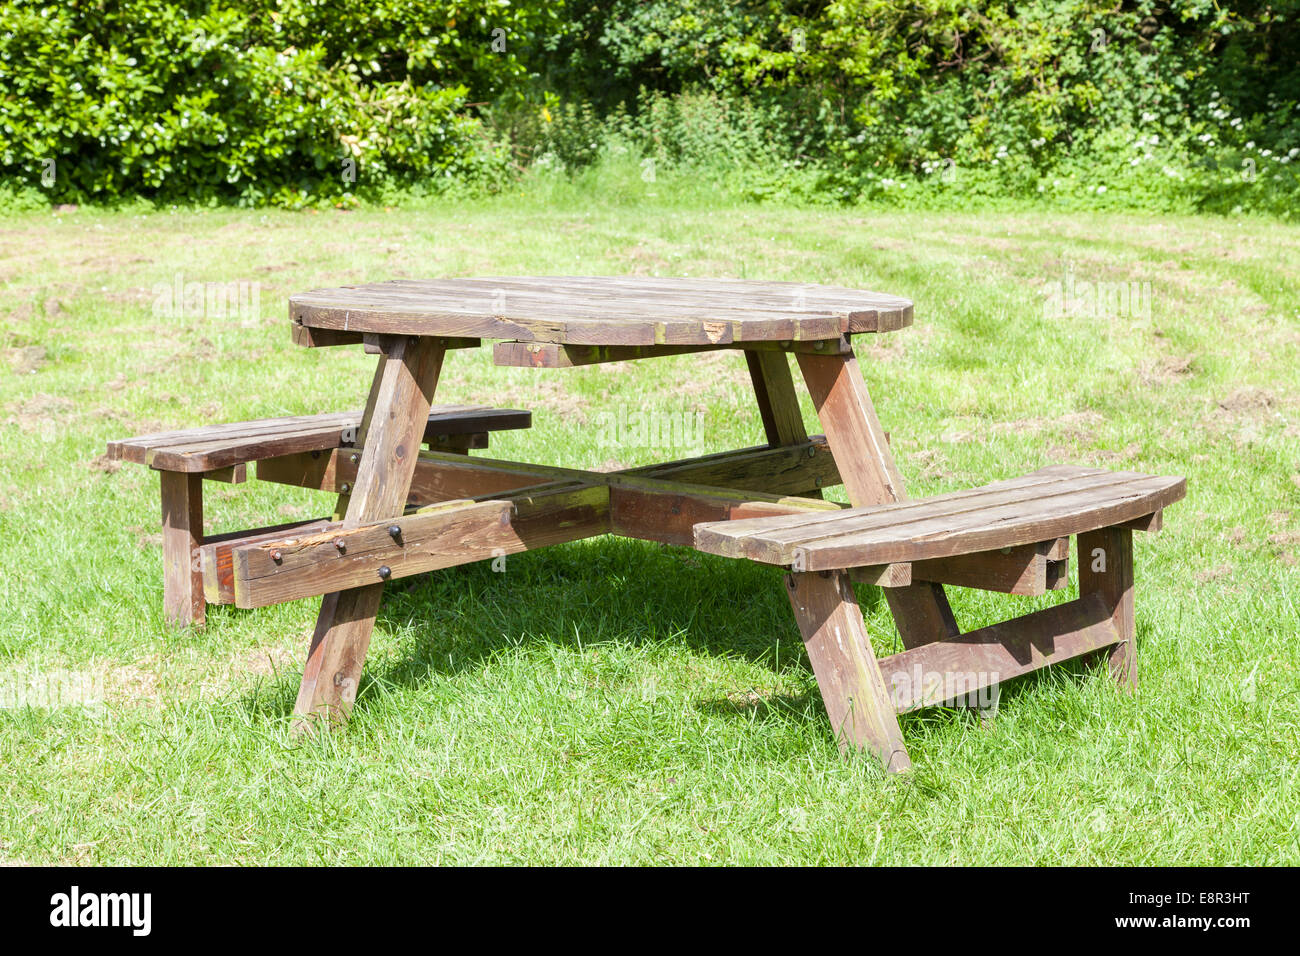 Round Wooden Picnic Table And Seating On Grass In A Country Park Stock Photo Alamy